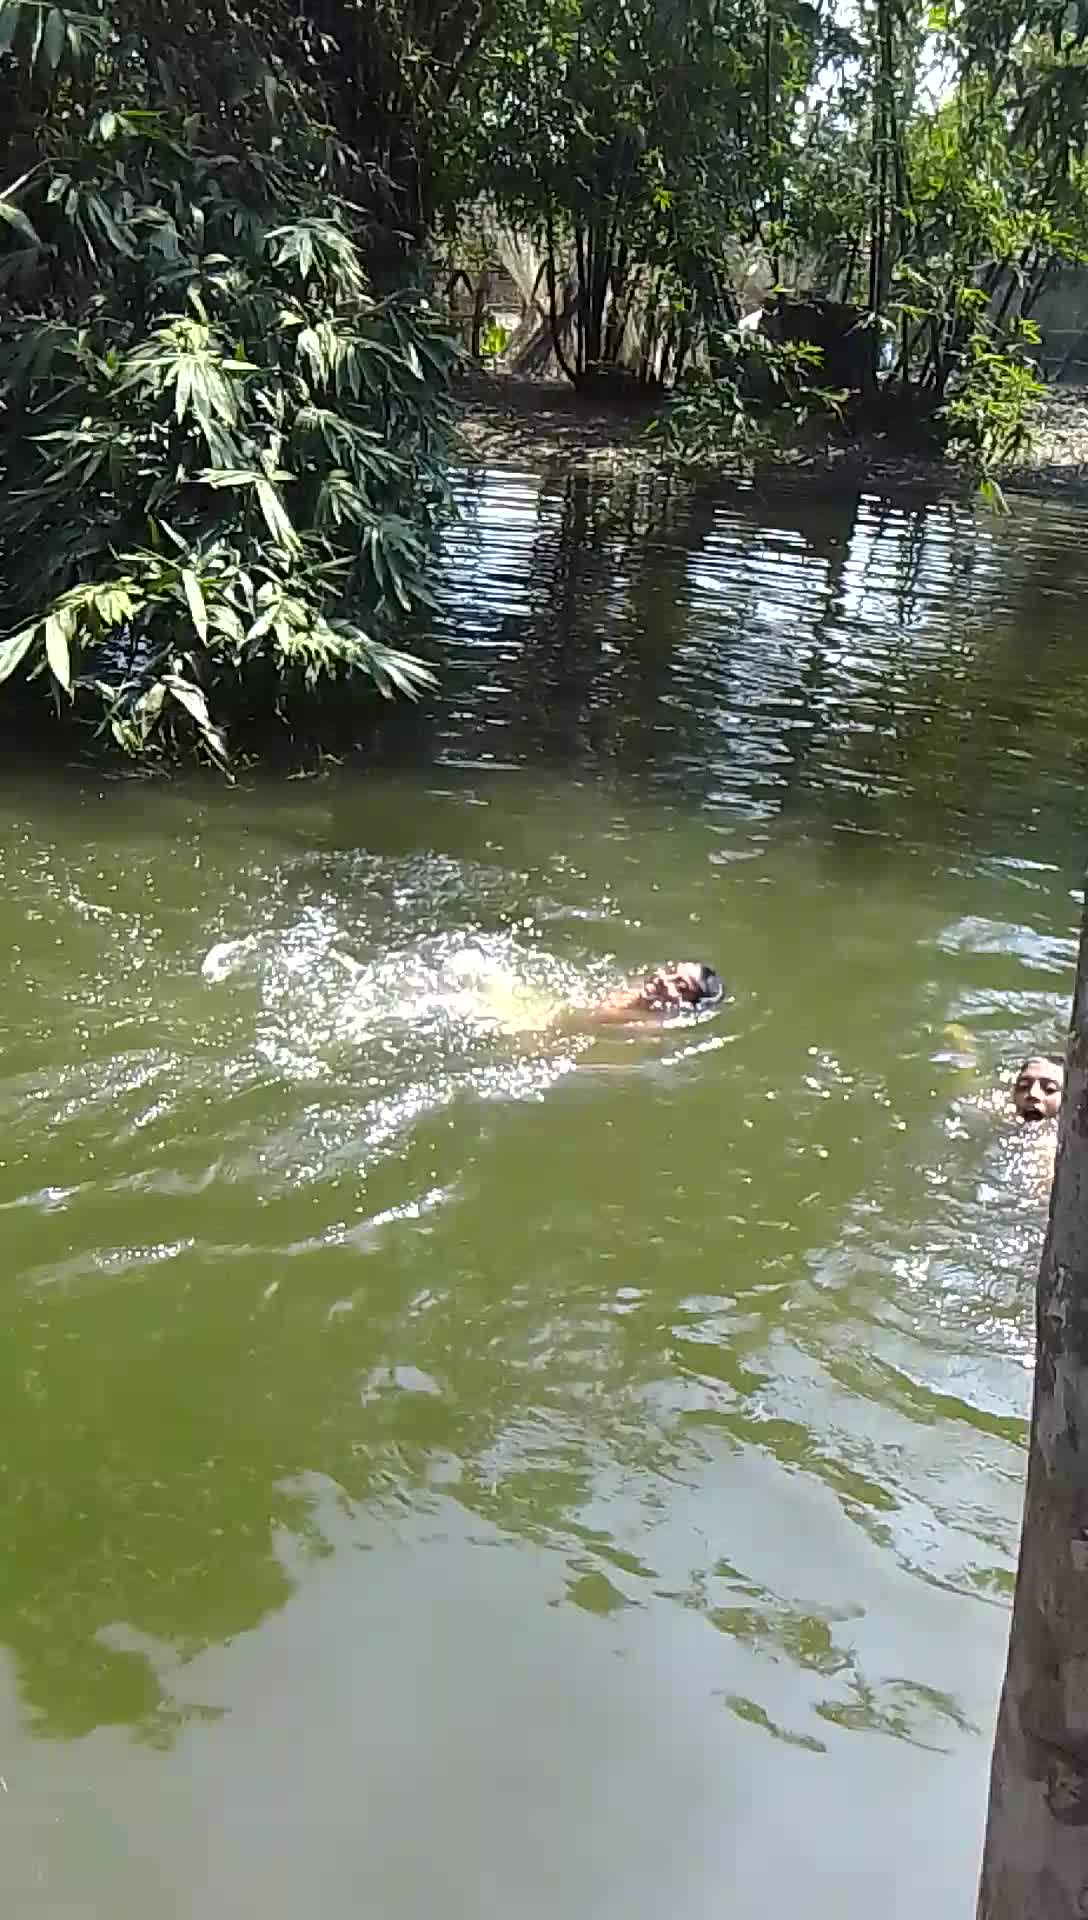 A little boy swimming in a pond.